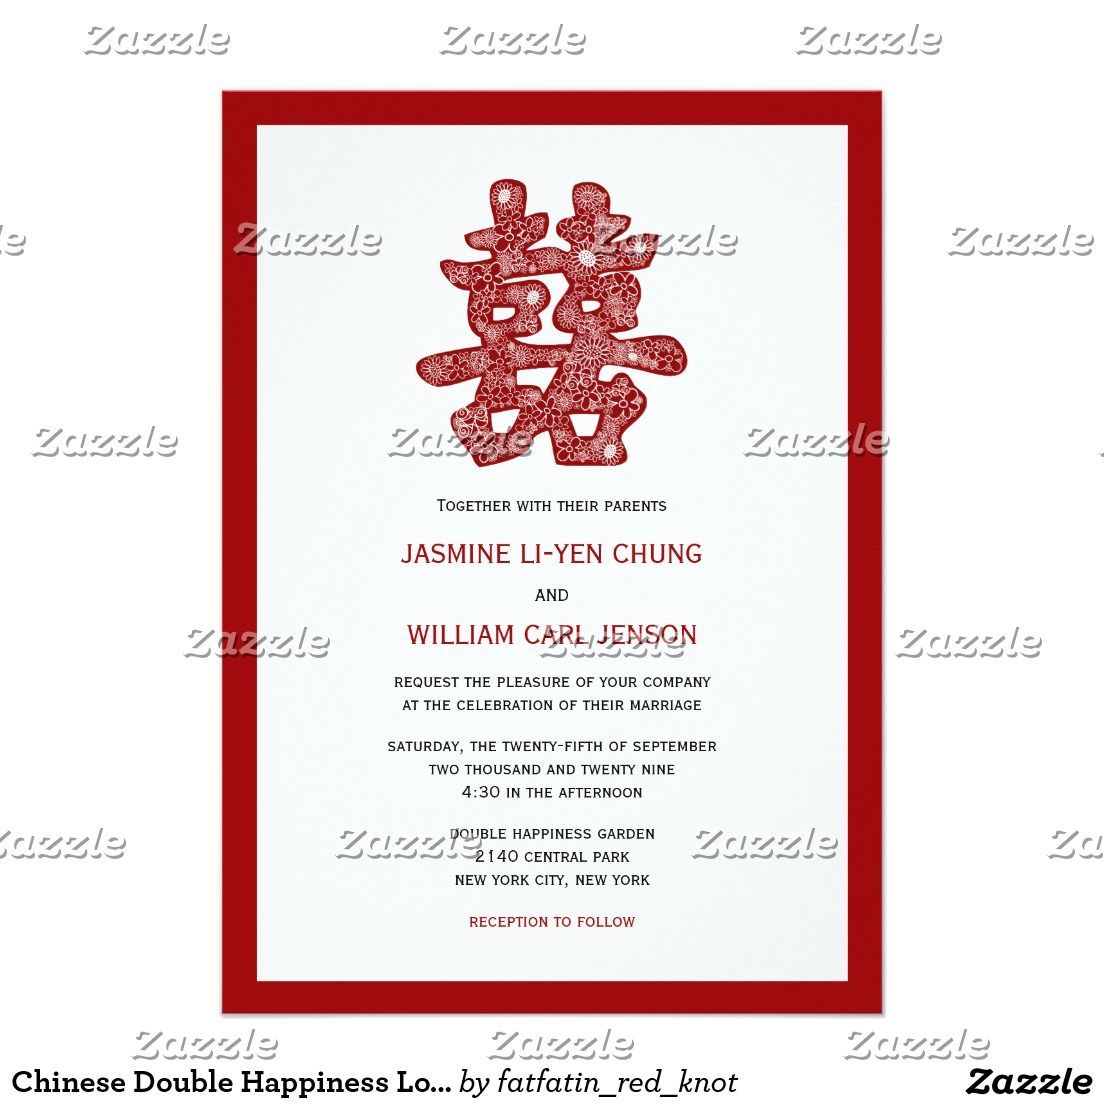 Red Floral Double Happiness Modern Chinese Wedding Invitation Zazzle Com Chinese Wedding Invitation Wedding Invitation Wording Templates Chinese Wedding Invitation Card